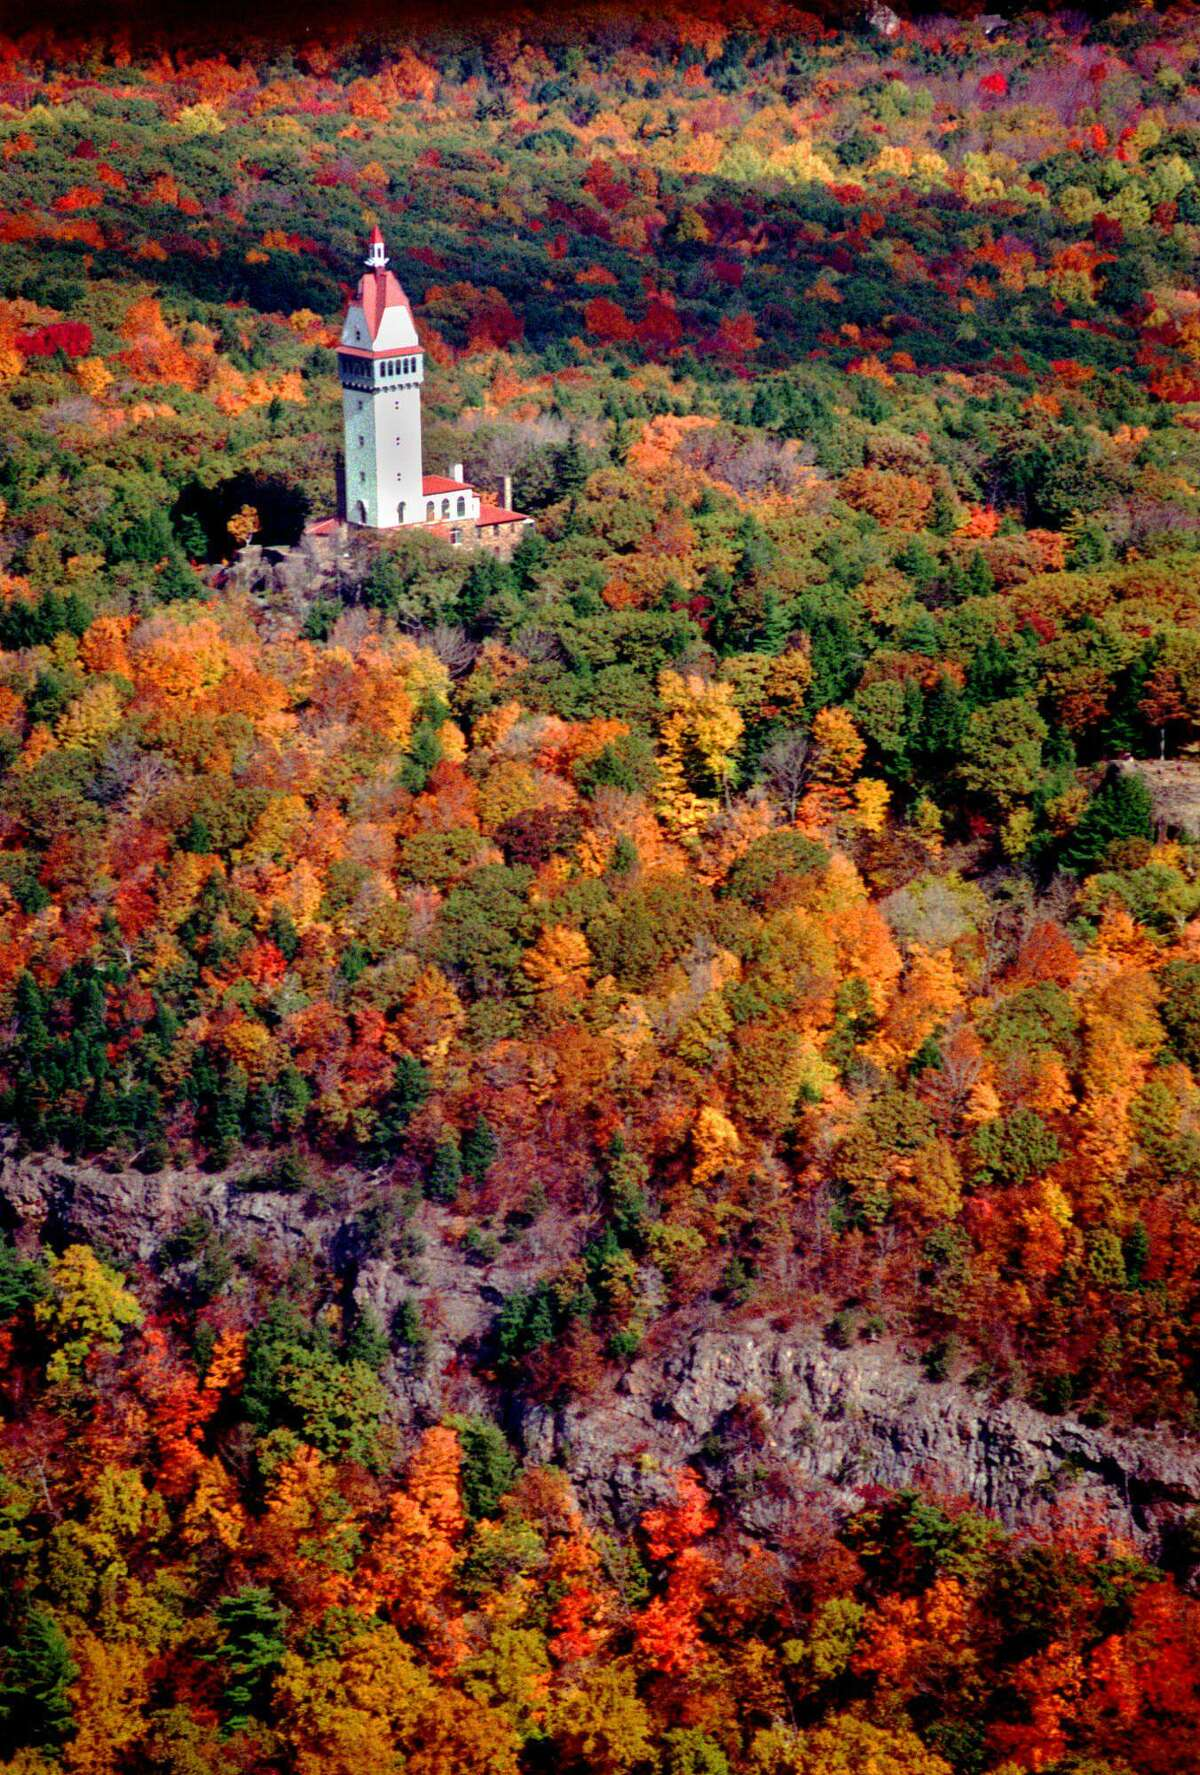 Autumn foliage is at its peak Tuesday, Oct. 19, 1999, surrounding the Hueblein Tower on the top of the Talcott Mountain State Park in Simsbury, Conn., as seen in this aerial photo. (AP Photo/The Hartford Courant, Alan Chaniewski)